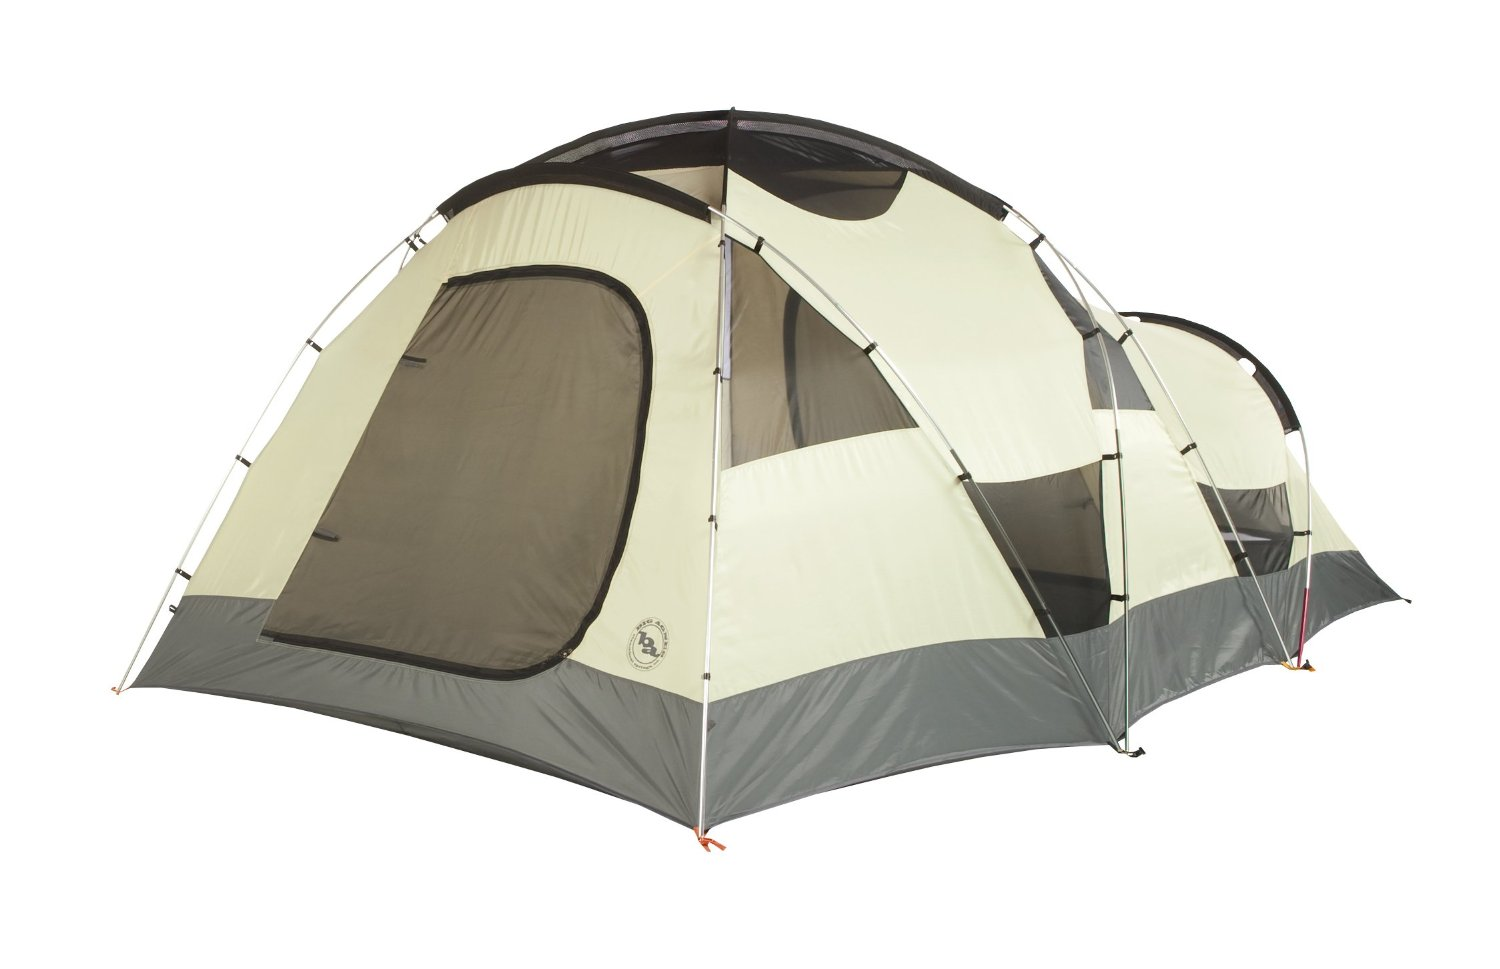 Big Agnes Tents  sc 1 th 180 & Tent Reviews and buying guide for the budget minded camper